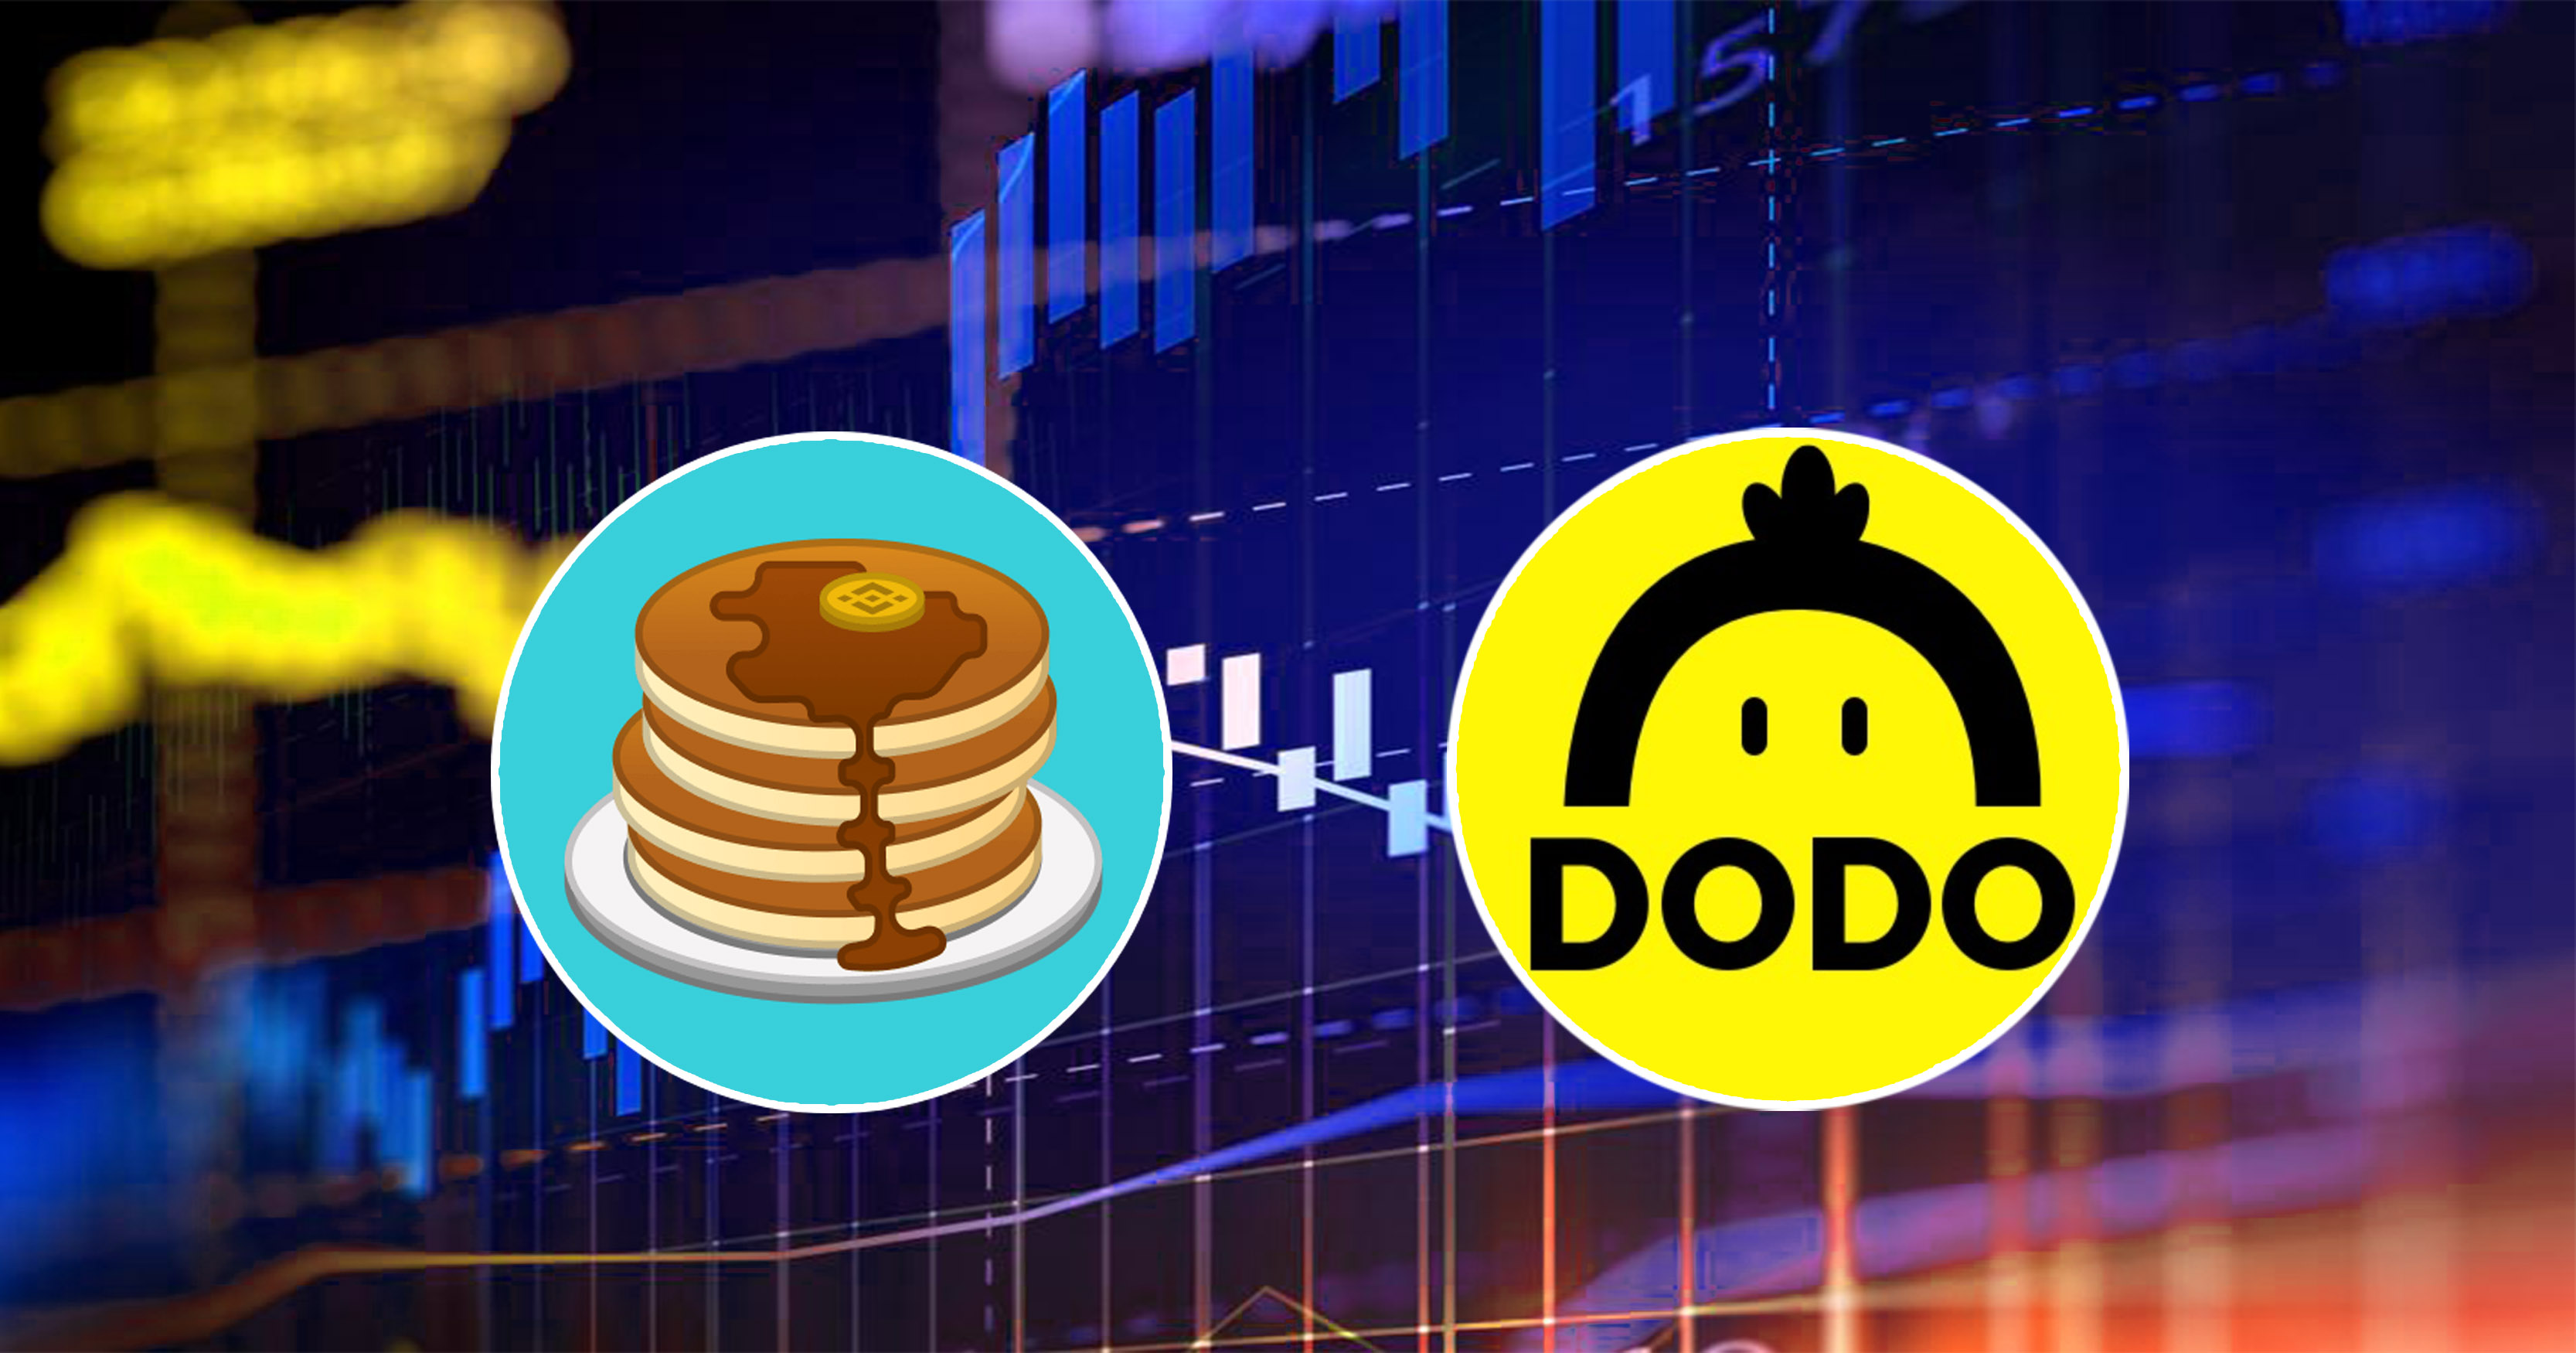 PancakeSwap (CAKE) and DODOEx (DODO) Technical Analysis: What to Expect?